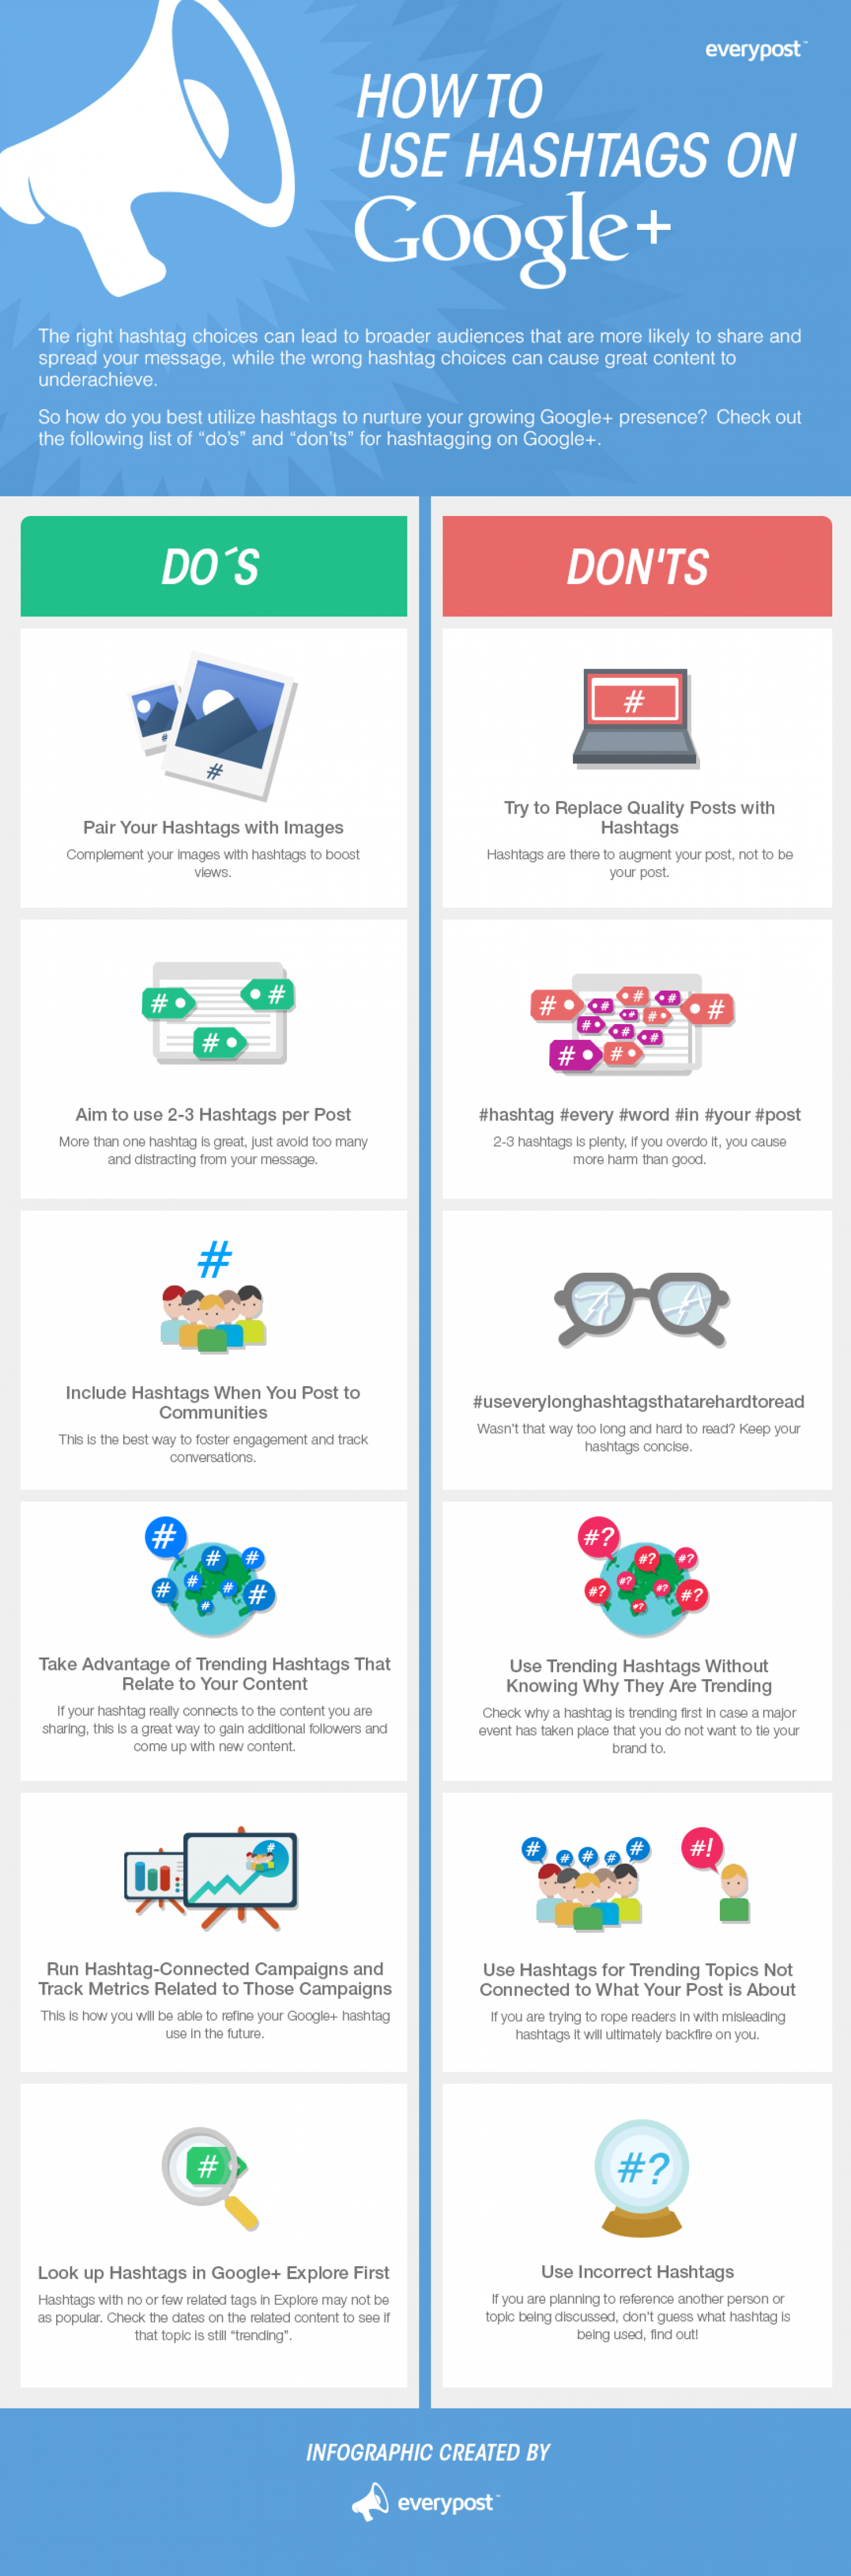 How to Use the Hashtags on Google Plus - The Do's and Don'ts (Infographic) - www.ShaanHaider.com